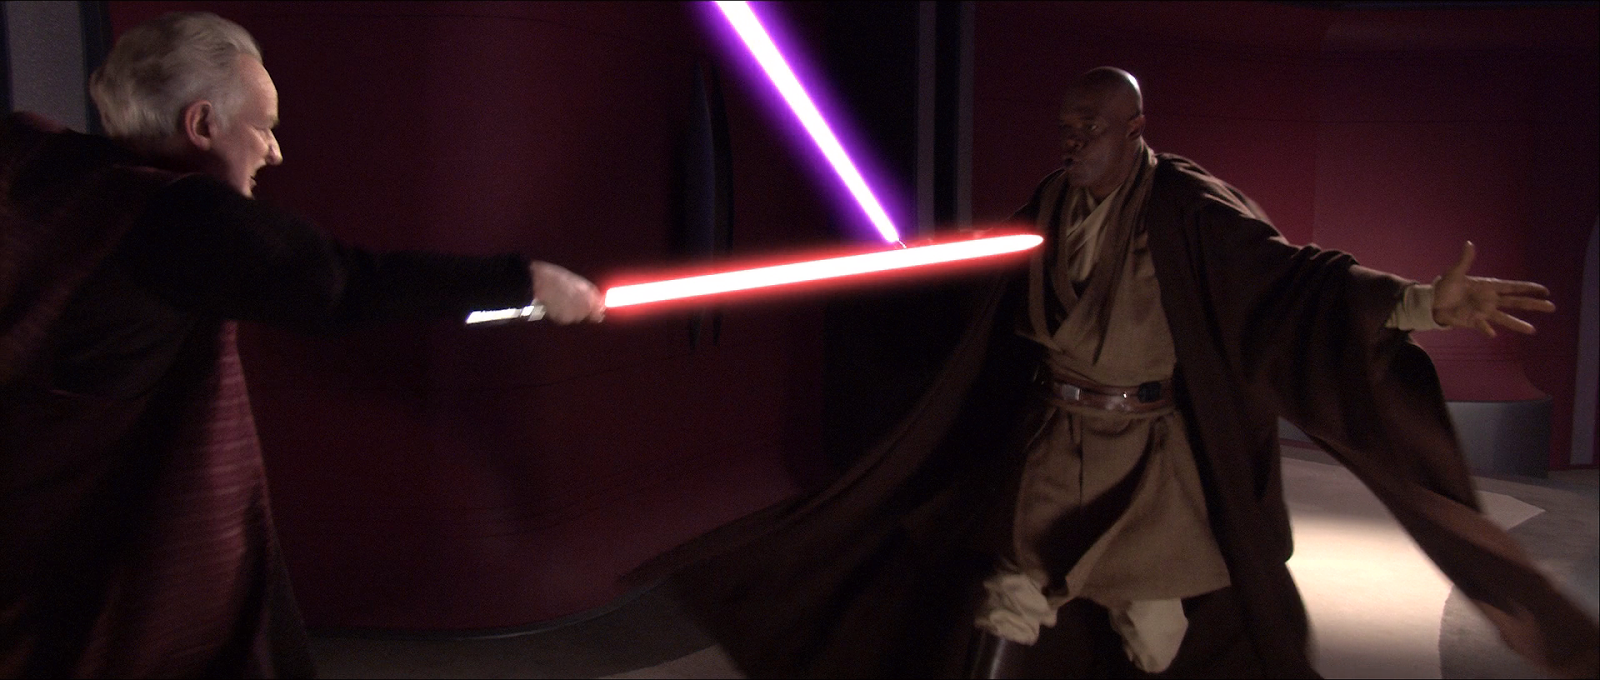 Mace Windu Quotes From The Star Wars Prequel Movies In A